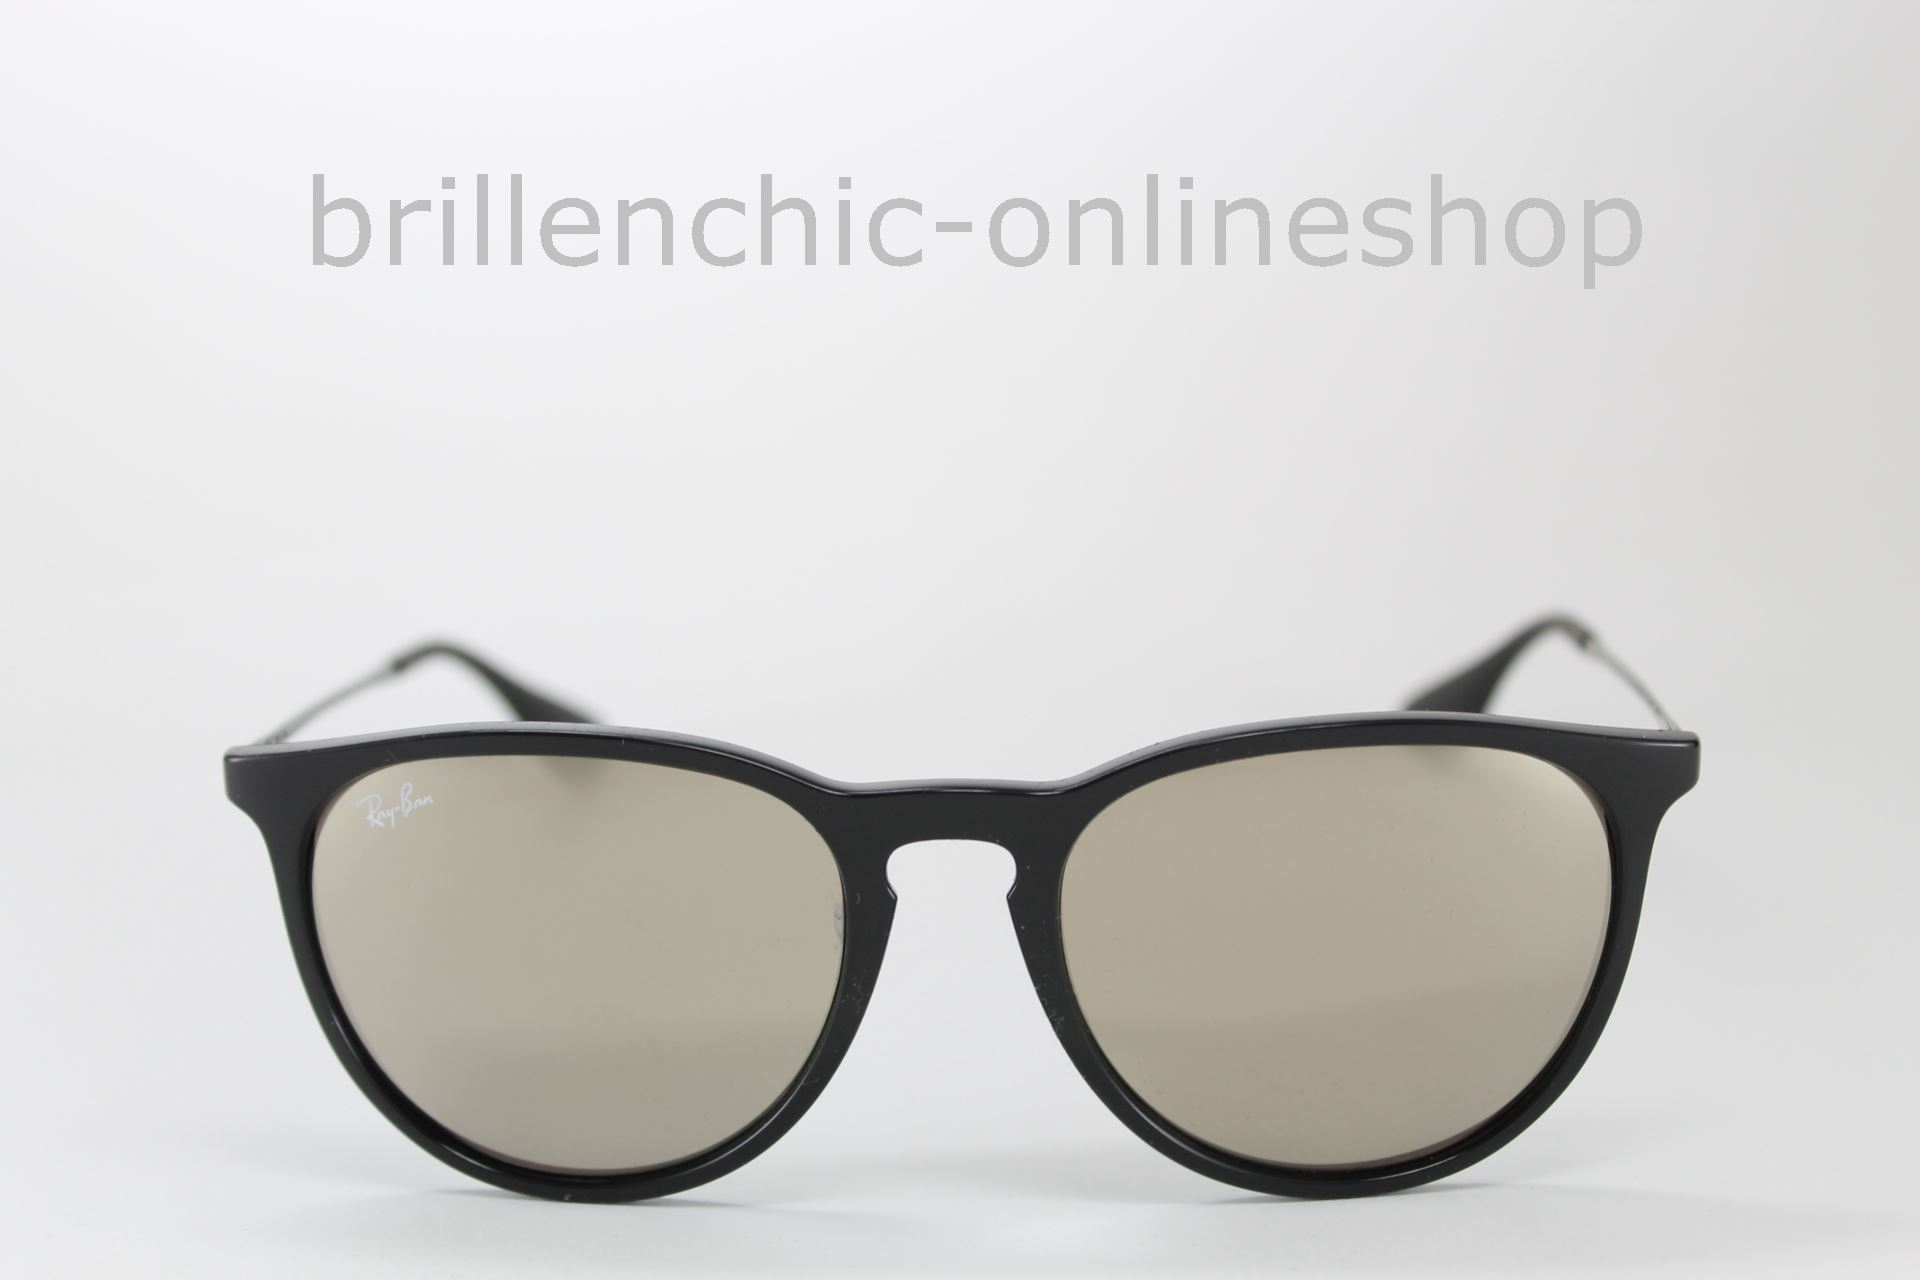 de6b4e91437 Brillenchic-onlineshop in Berlin - Ray Ban ERIKA RB 4171 601 5A